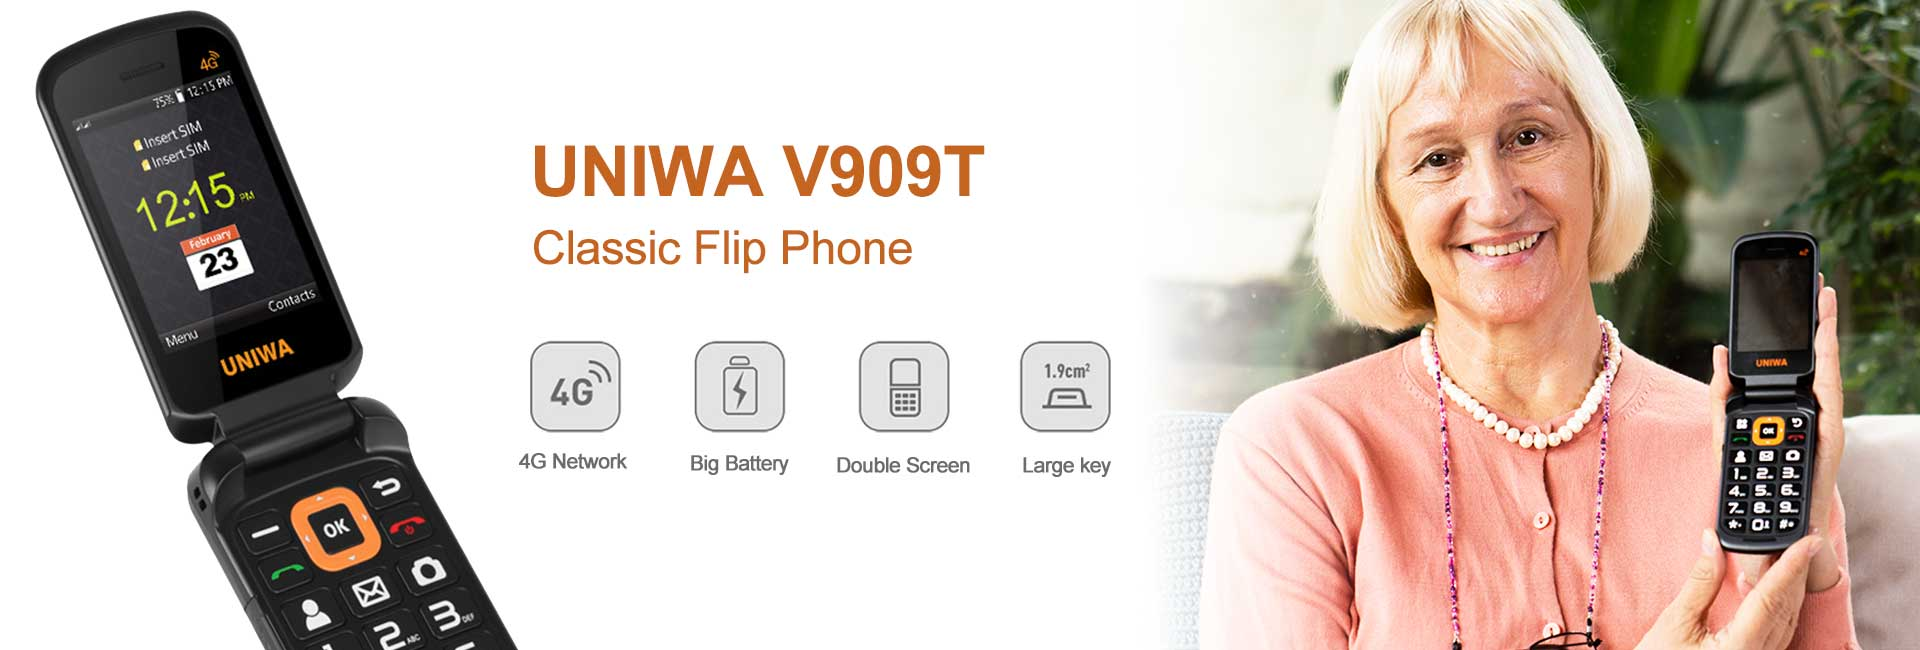 V909T Flip feature phone